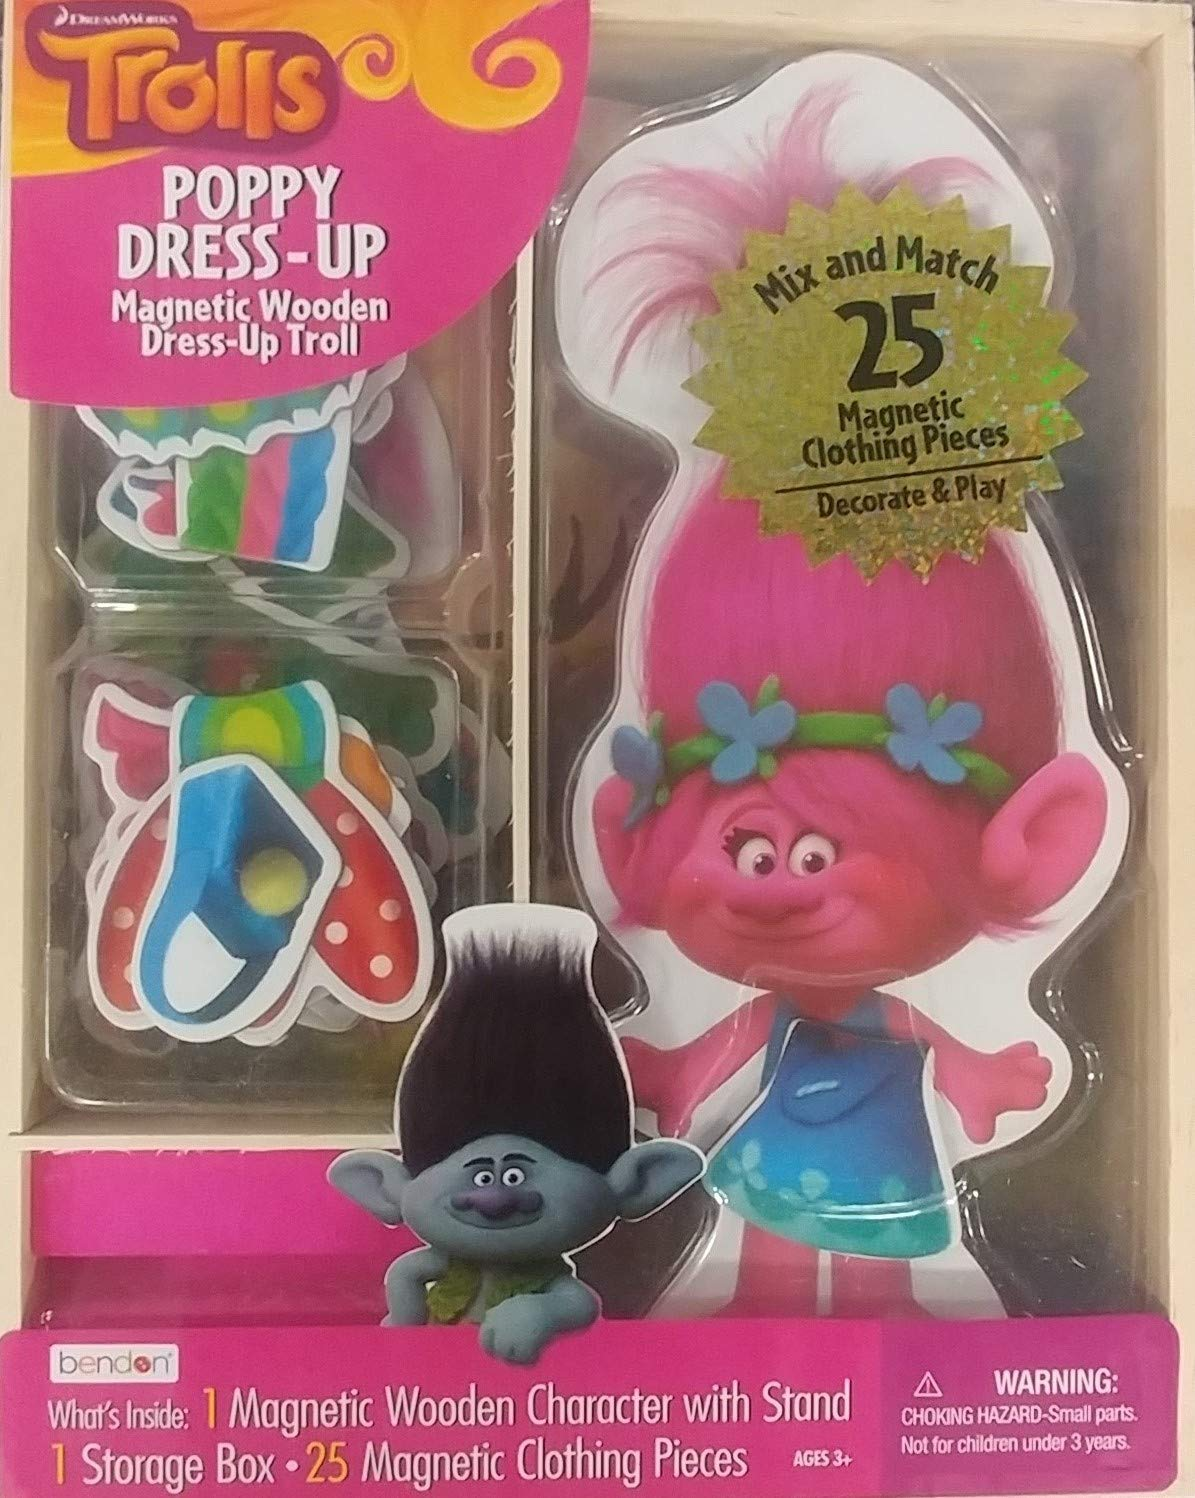 Bendon Trolls Poppy Dress-Up Magnetic Wooden Mix and Match by Bendon